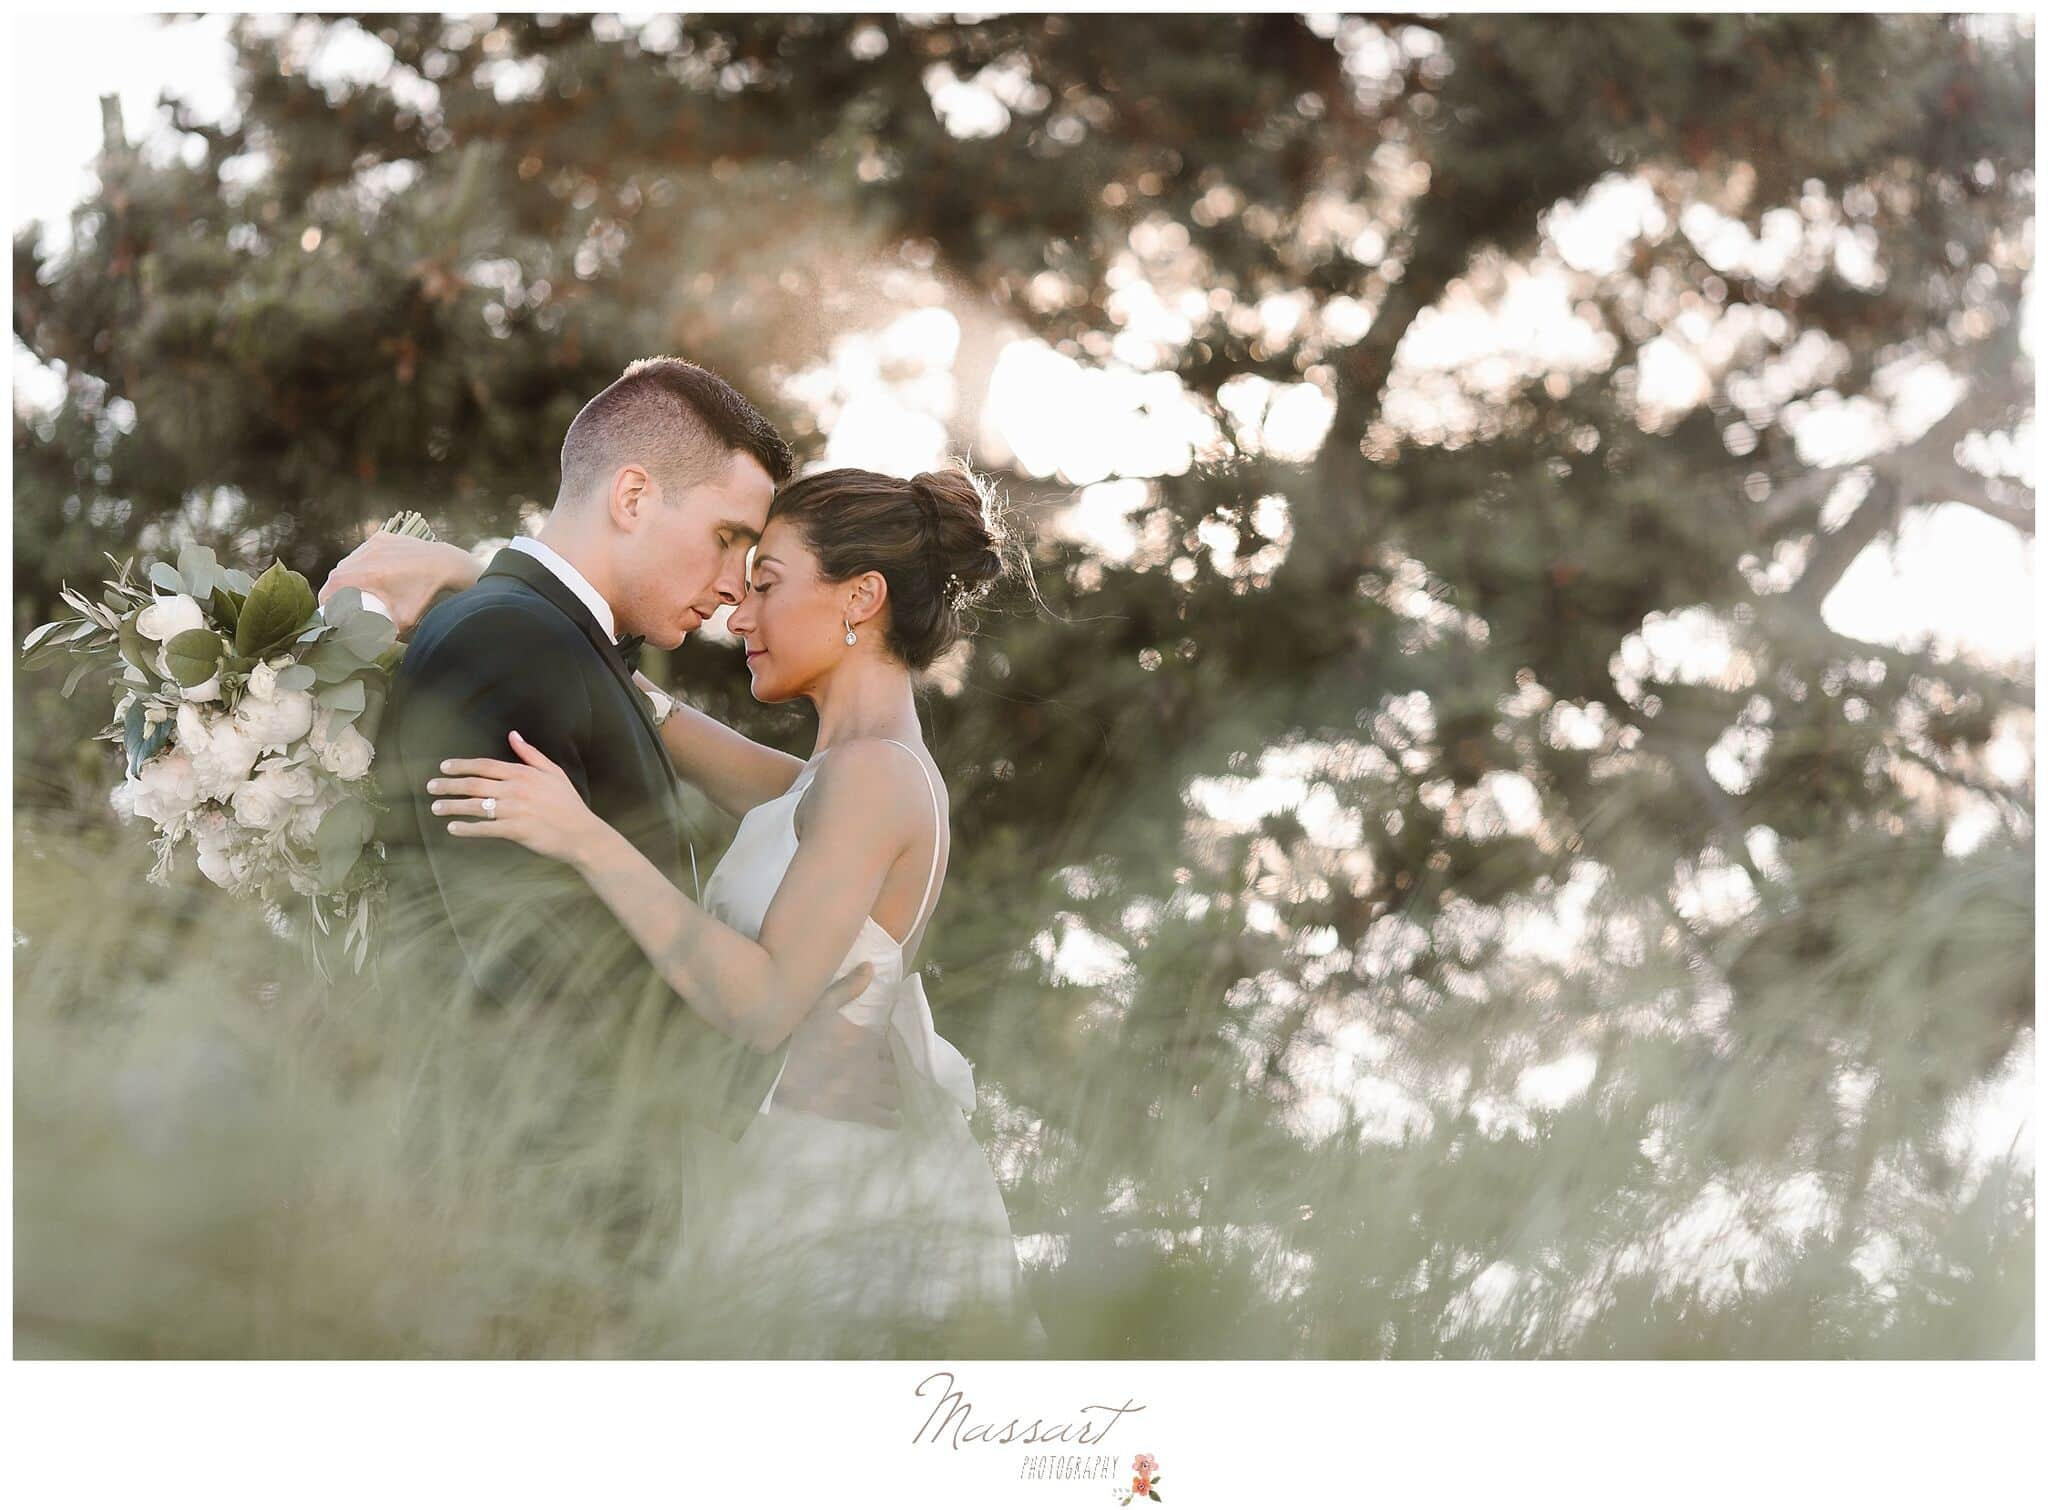 Outdoor wedding photo of bride and groom in a field photographed by Massart Photography RI